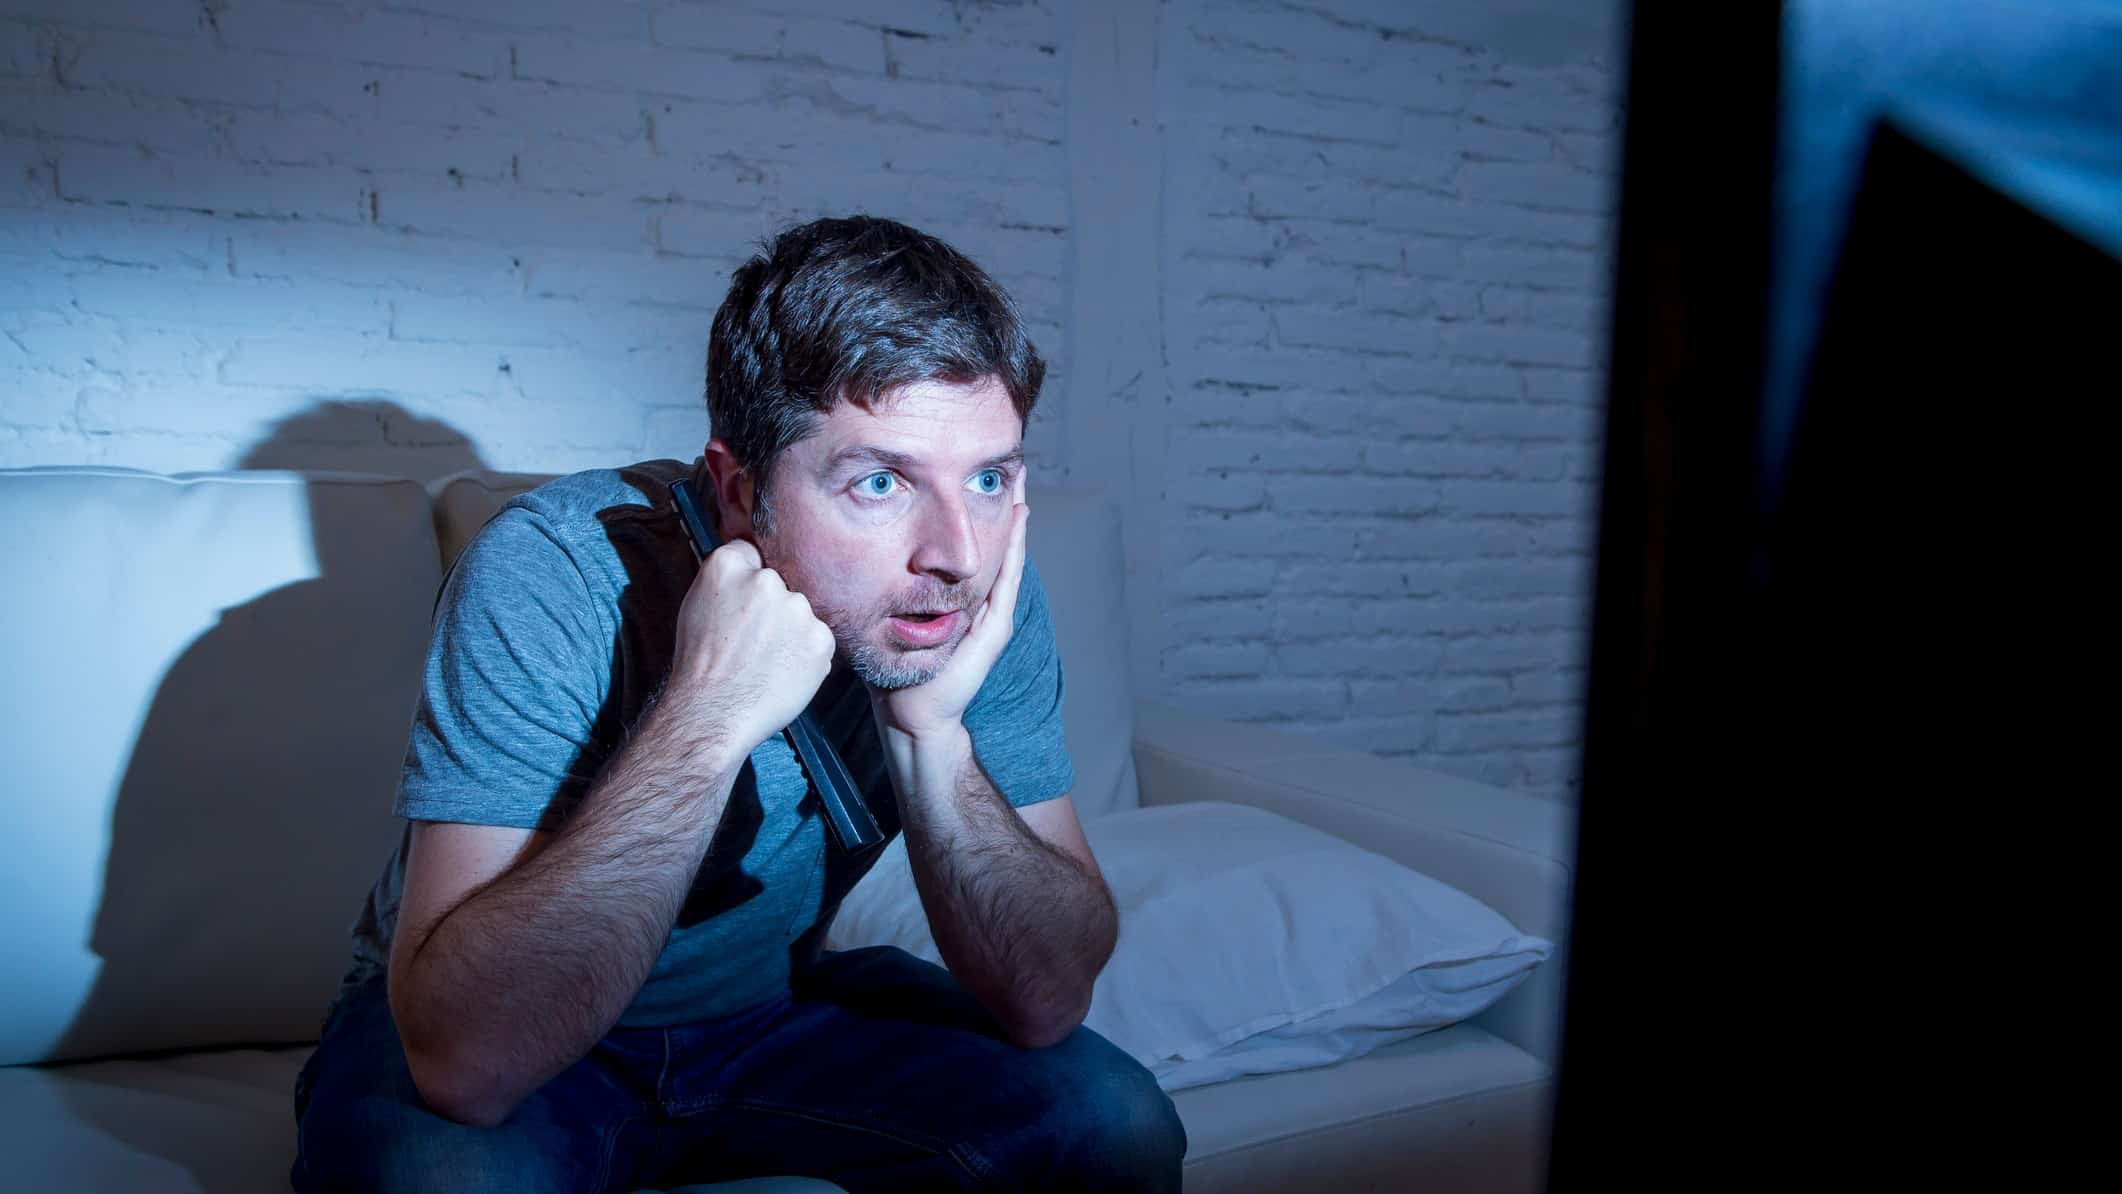 man intently watching tv representing media asx share price on watch